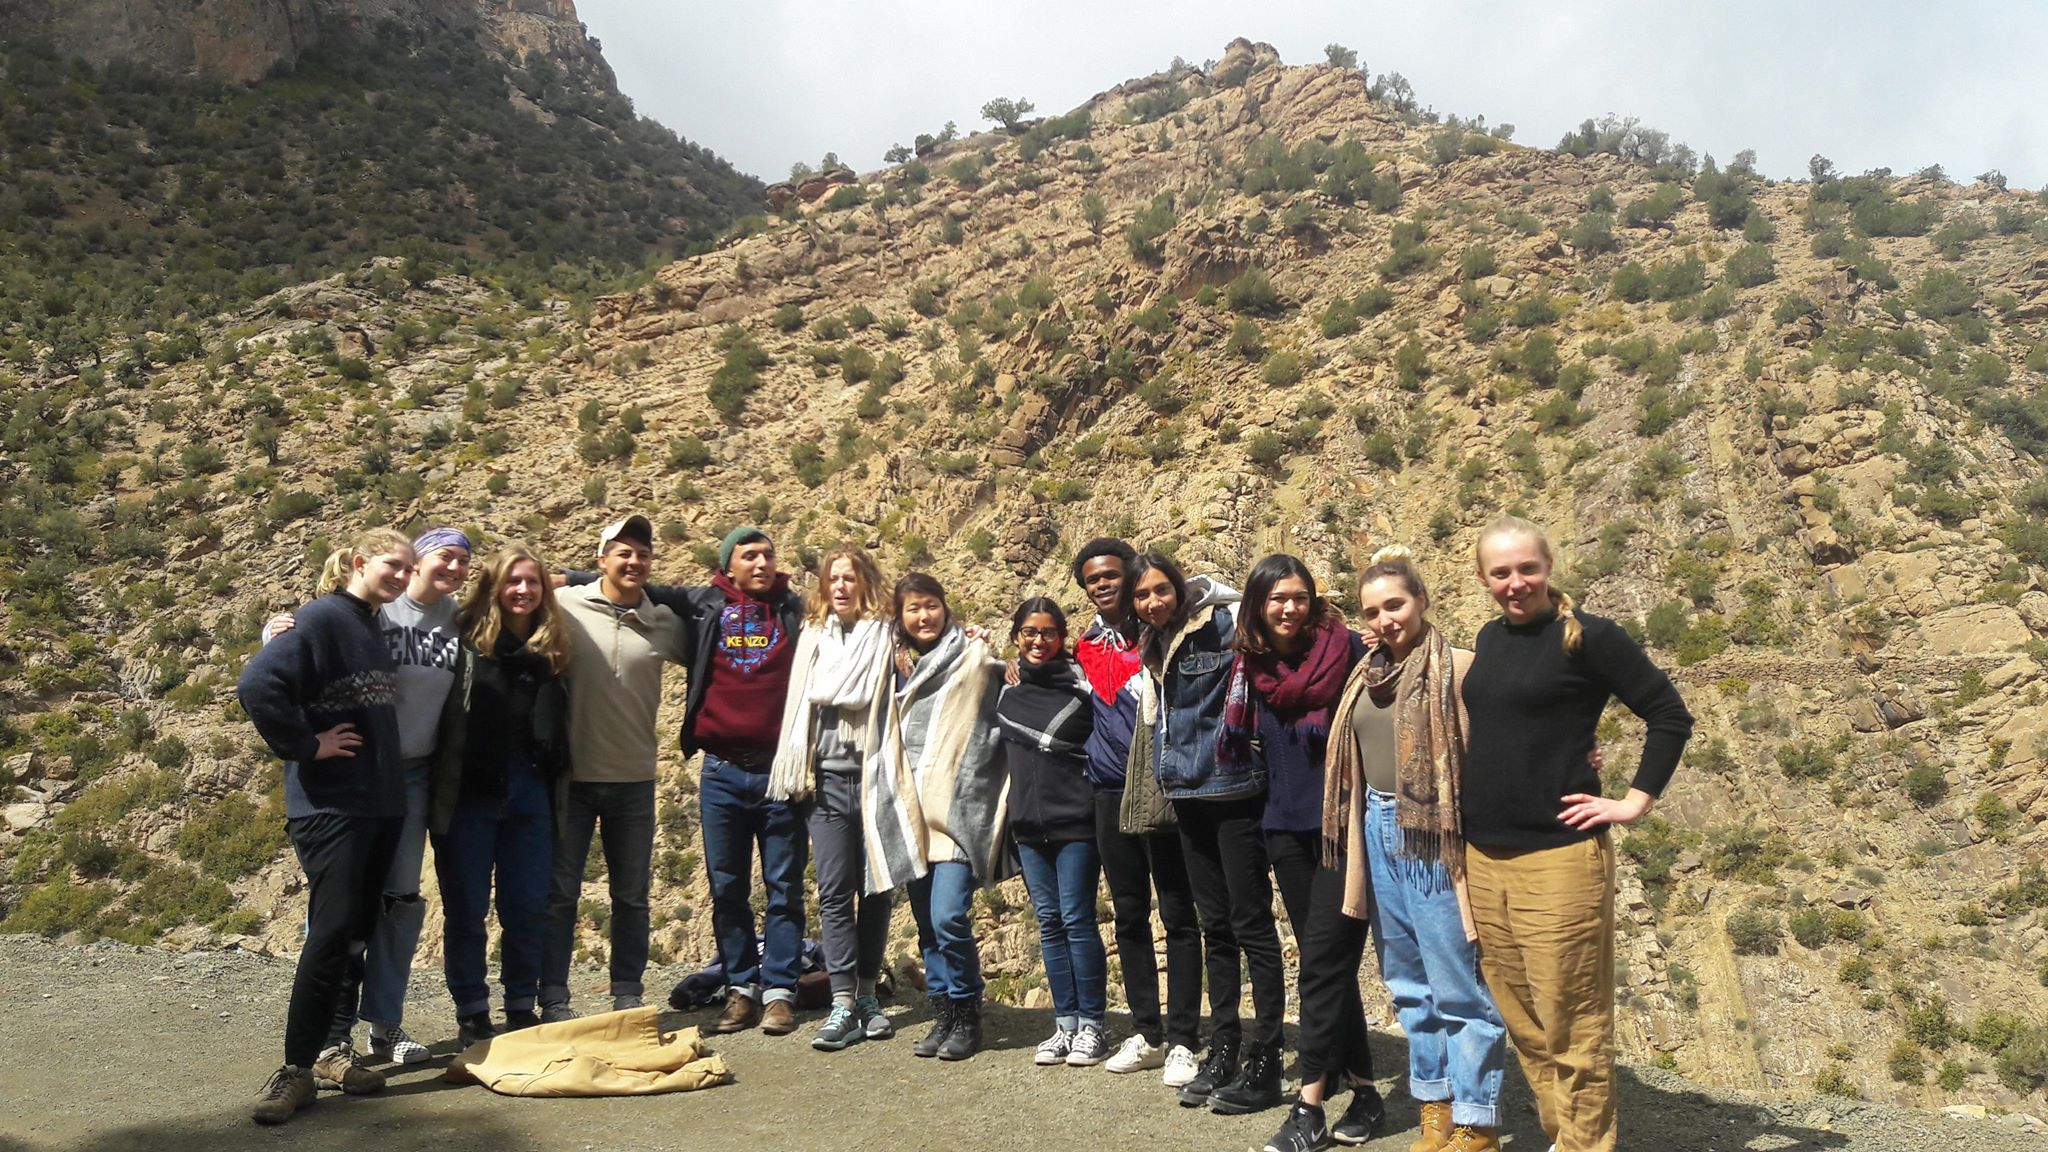 Students toured the village of Aguddim and hiked the surrounding mountains with a Moroccan mountain guide. Photo credit: Nabila Jaber, 2018